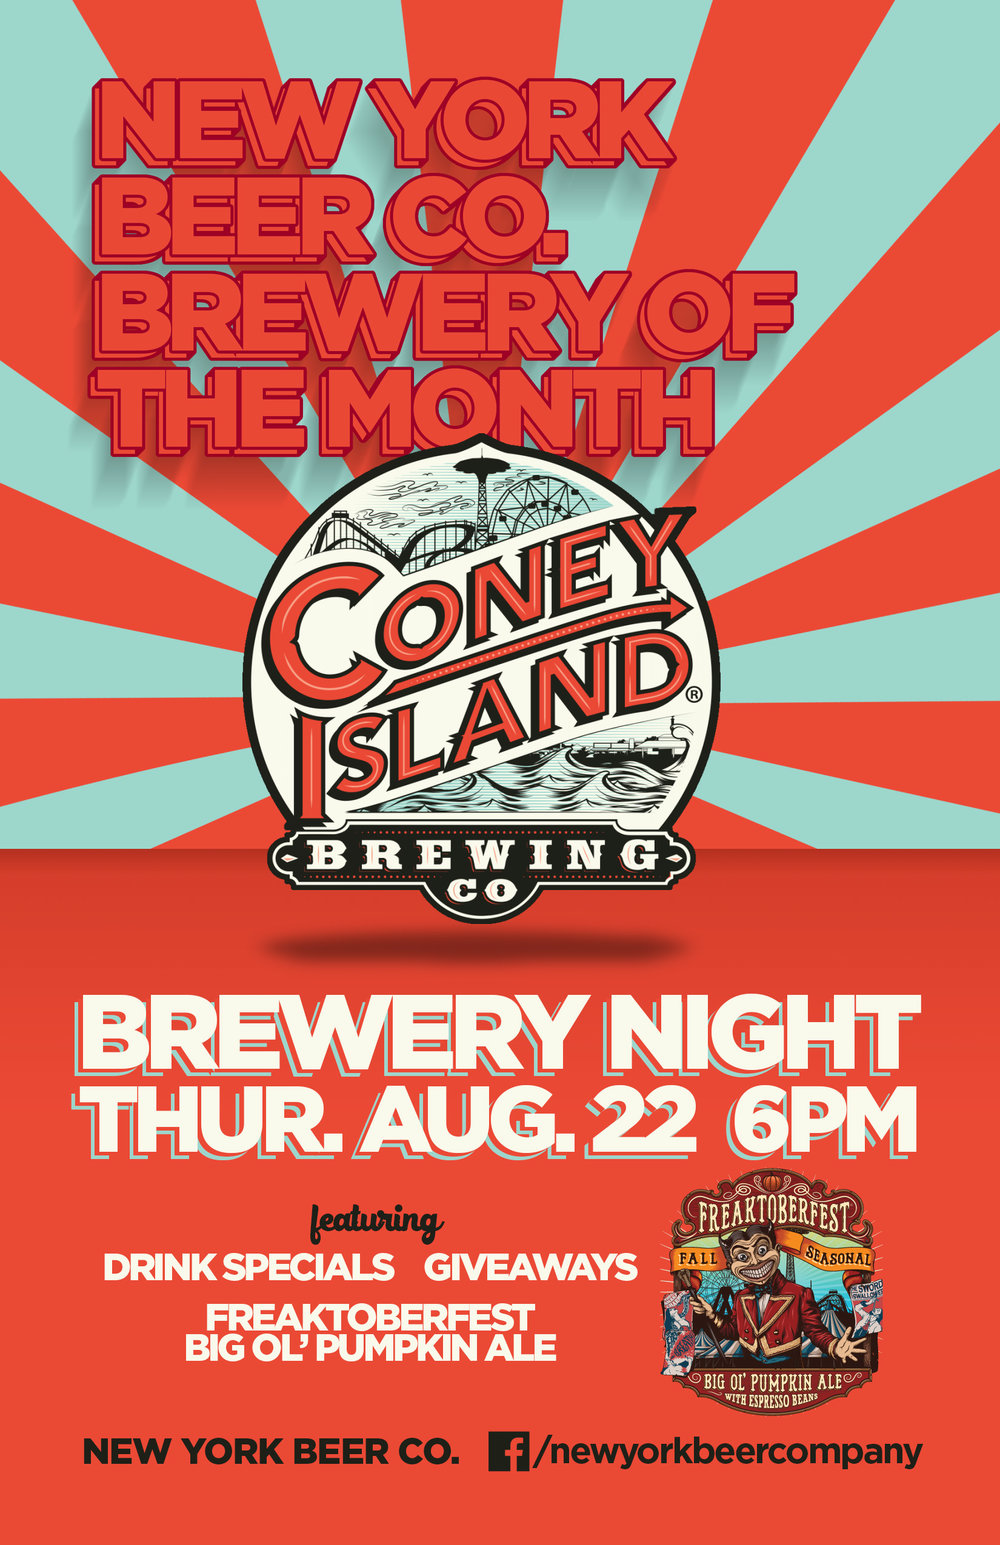 coney island brewery night